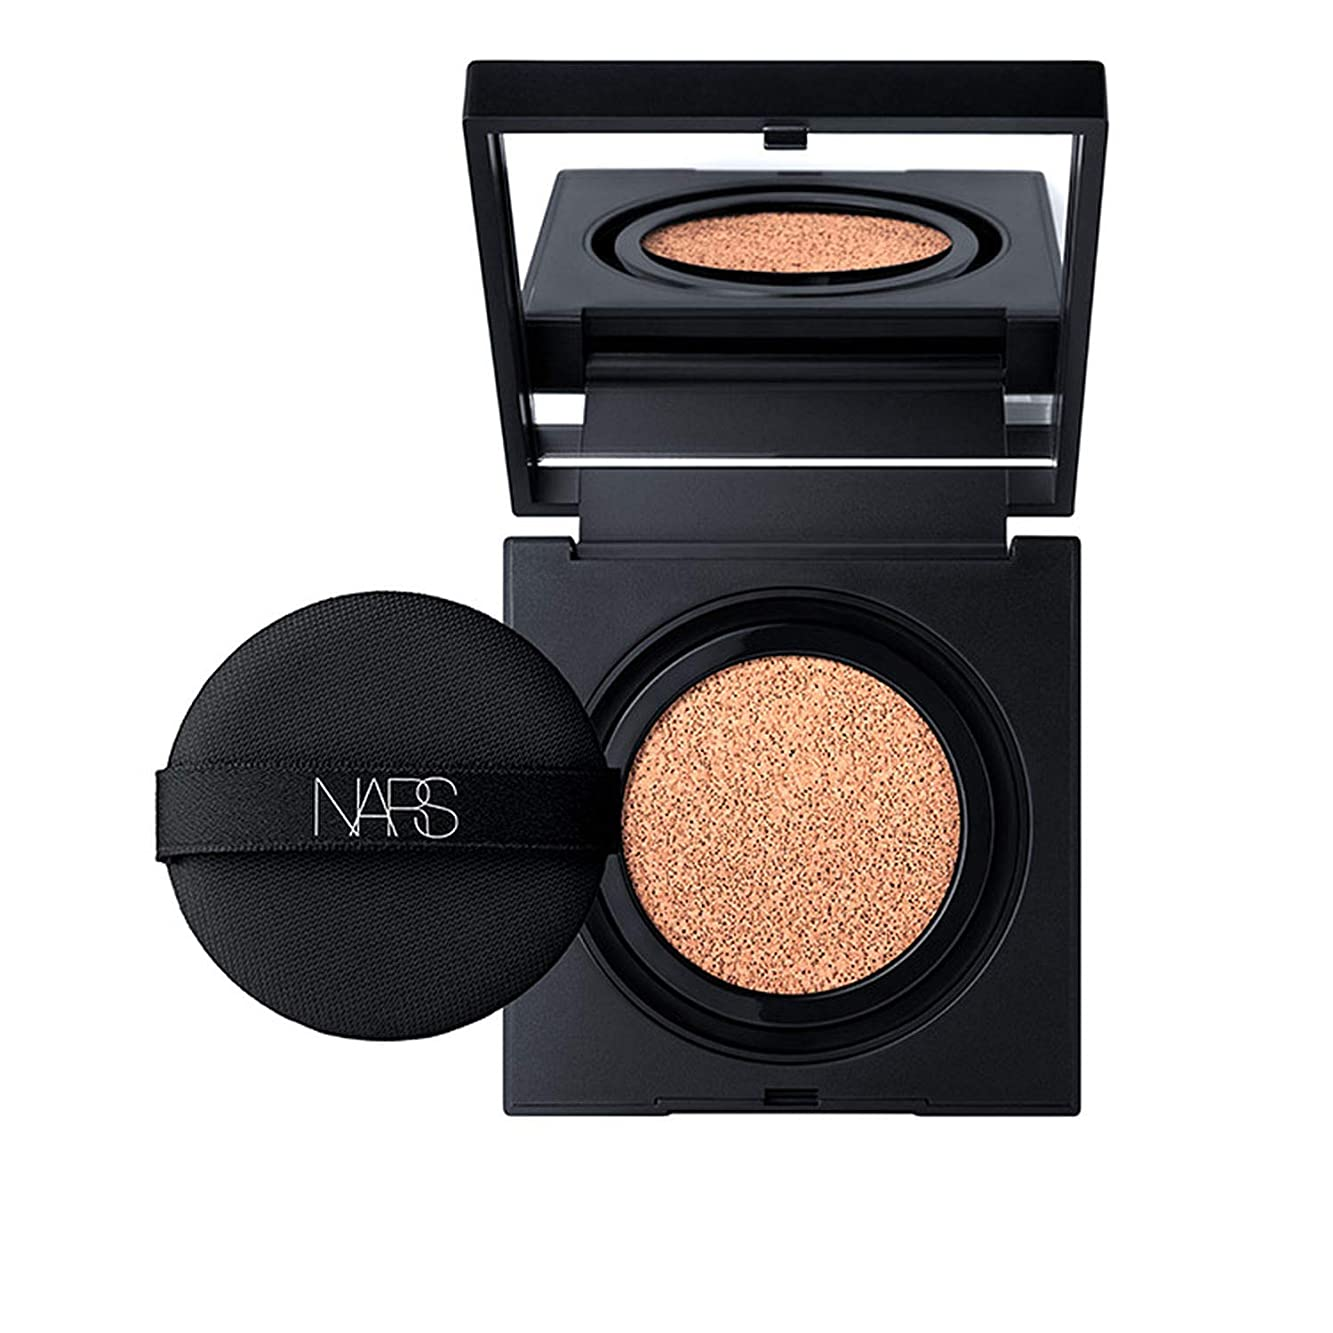 スナッチ恐ろしいダッシュNars(ナーズ) Natural Radiant Longwear Cushion Foundation 12g # Samcheong